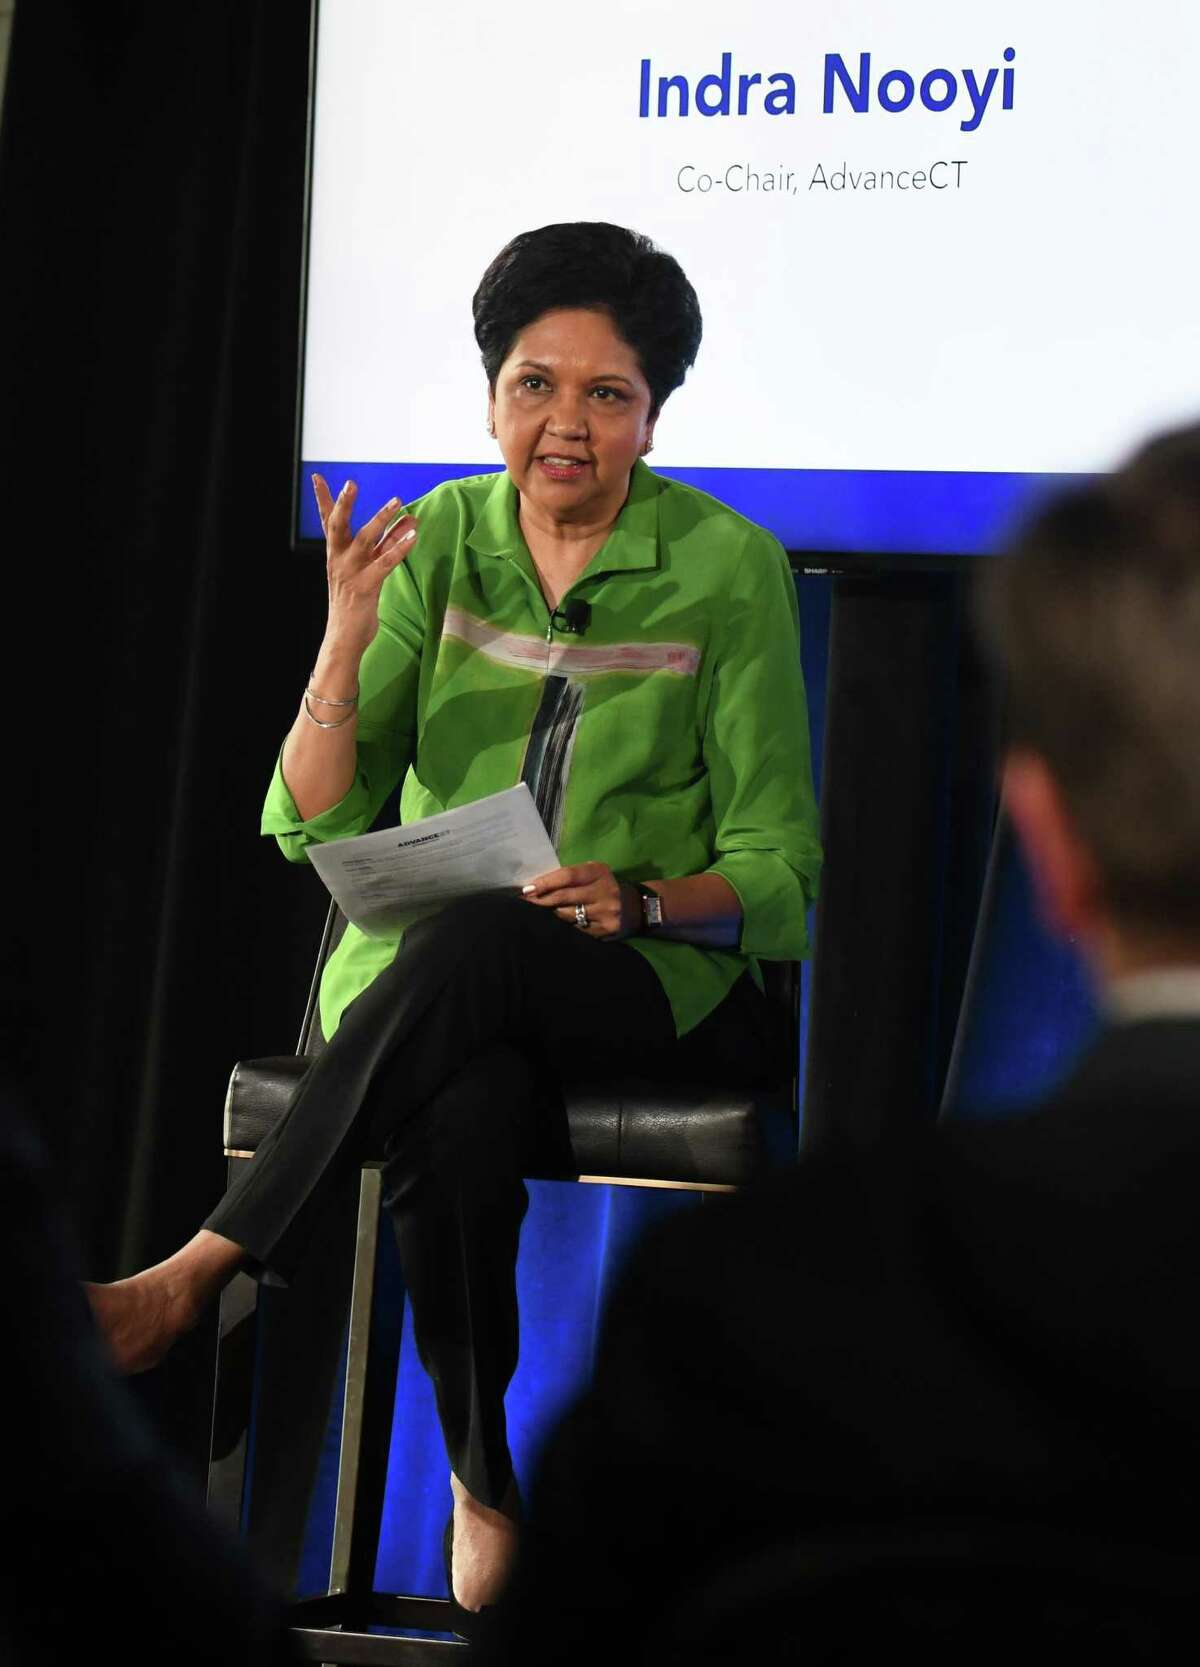 In her role as AdvanceCT co-chairwoman, Indra Nooyi discusses Phillip Morris International's plan to move its company headquarters to Connecticut during an event at The Village in Stamford, Conn., on June 22, 2021.